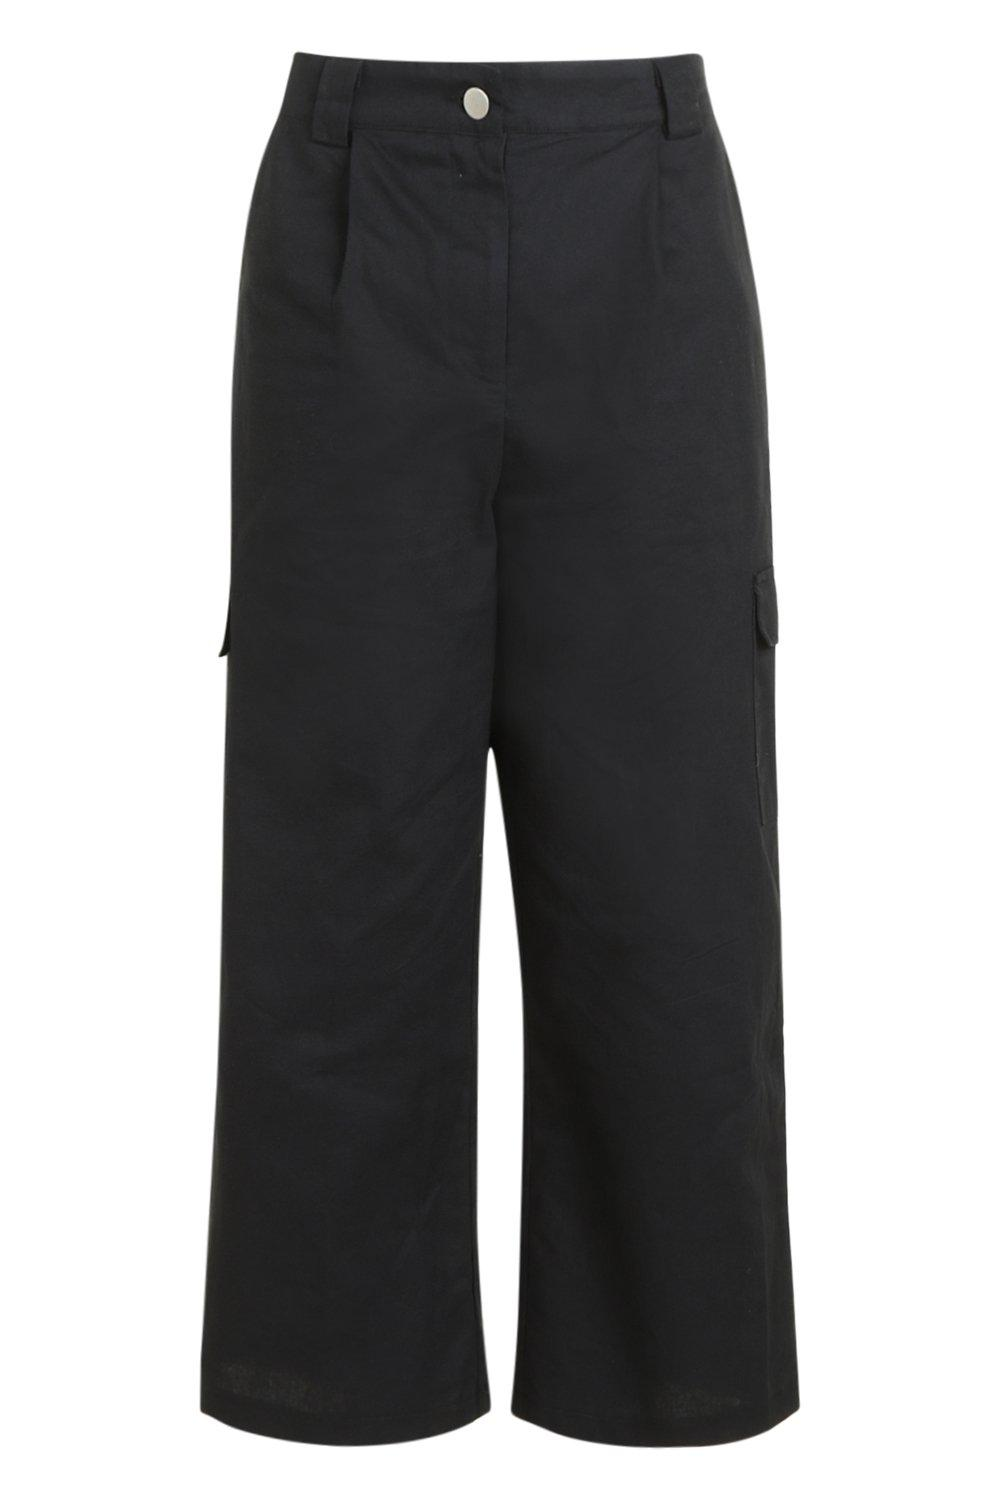 Pocket Trousers black Cropped Wide Cargo Leg wXIAxqYfn